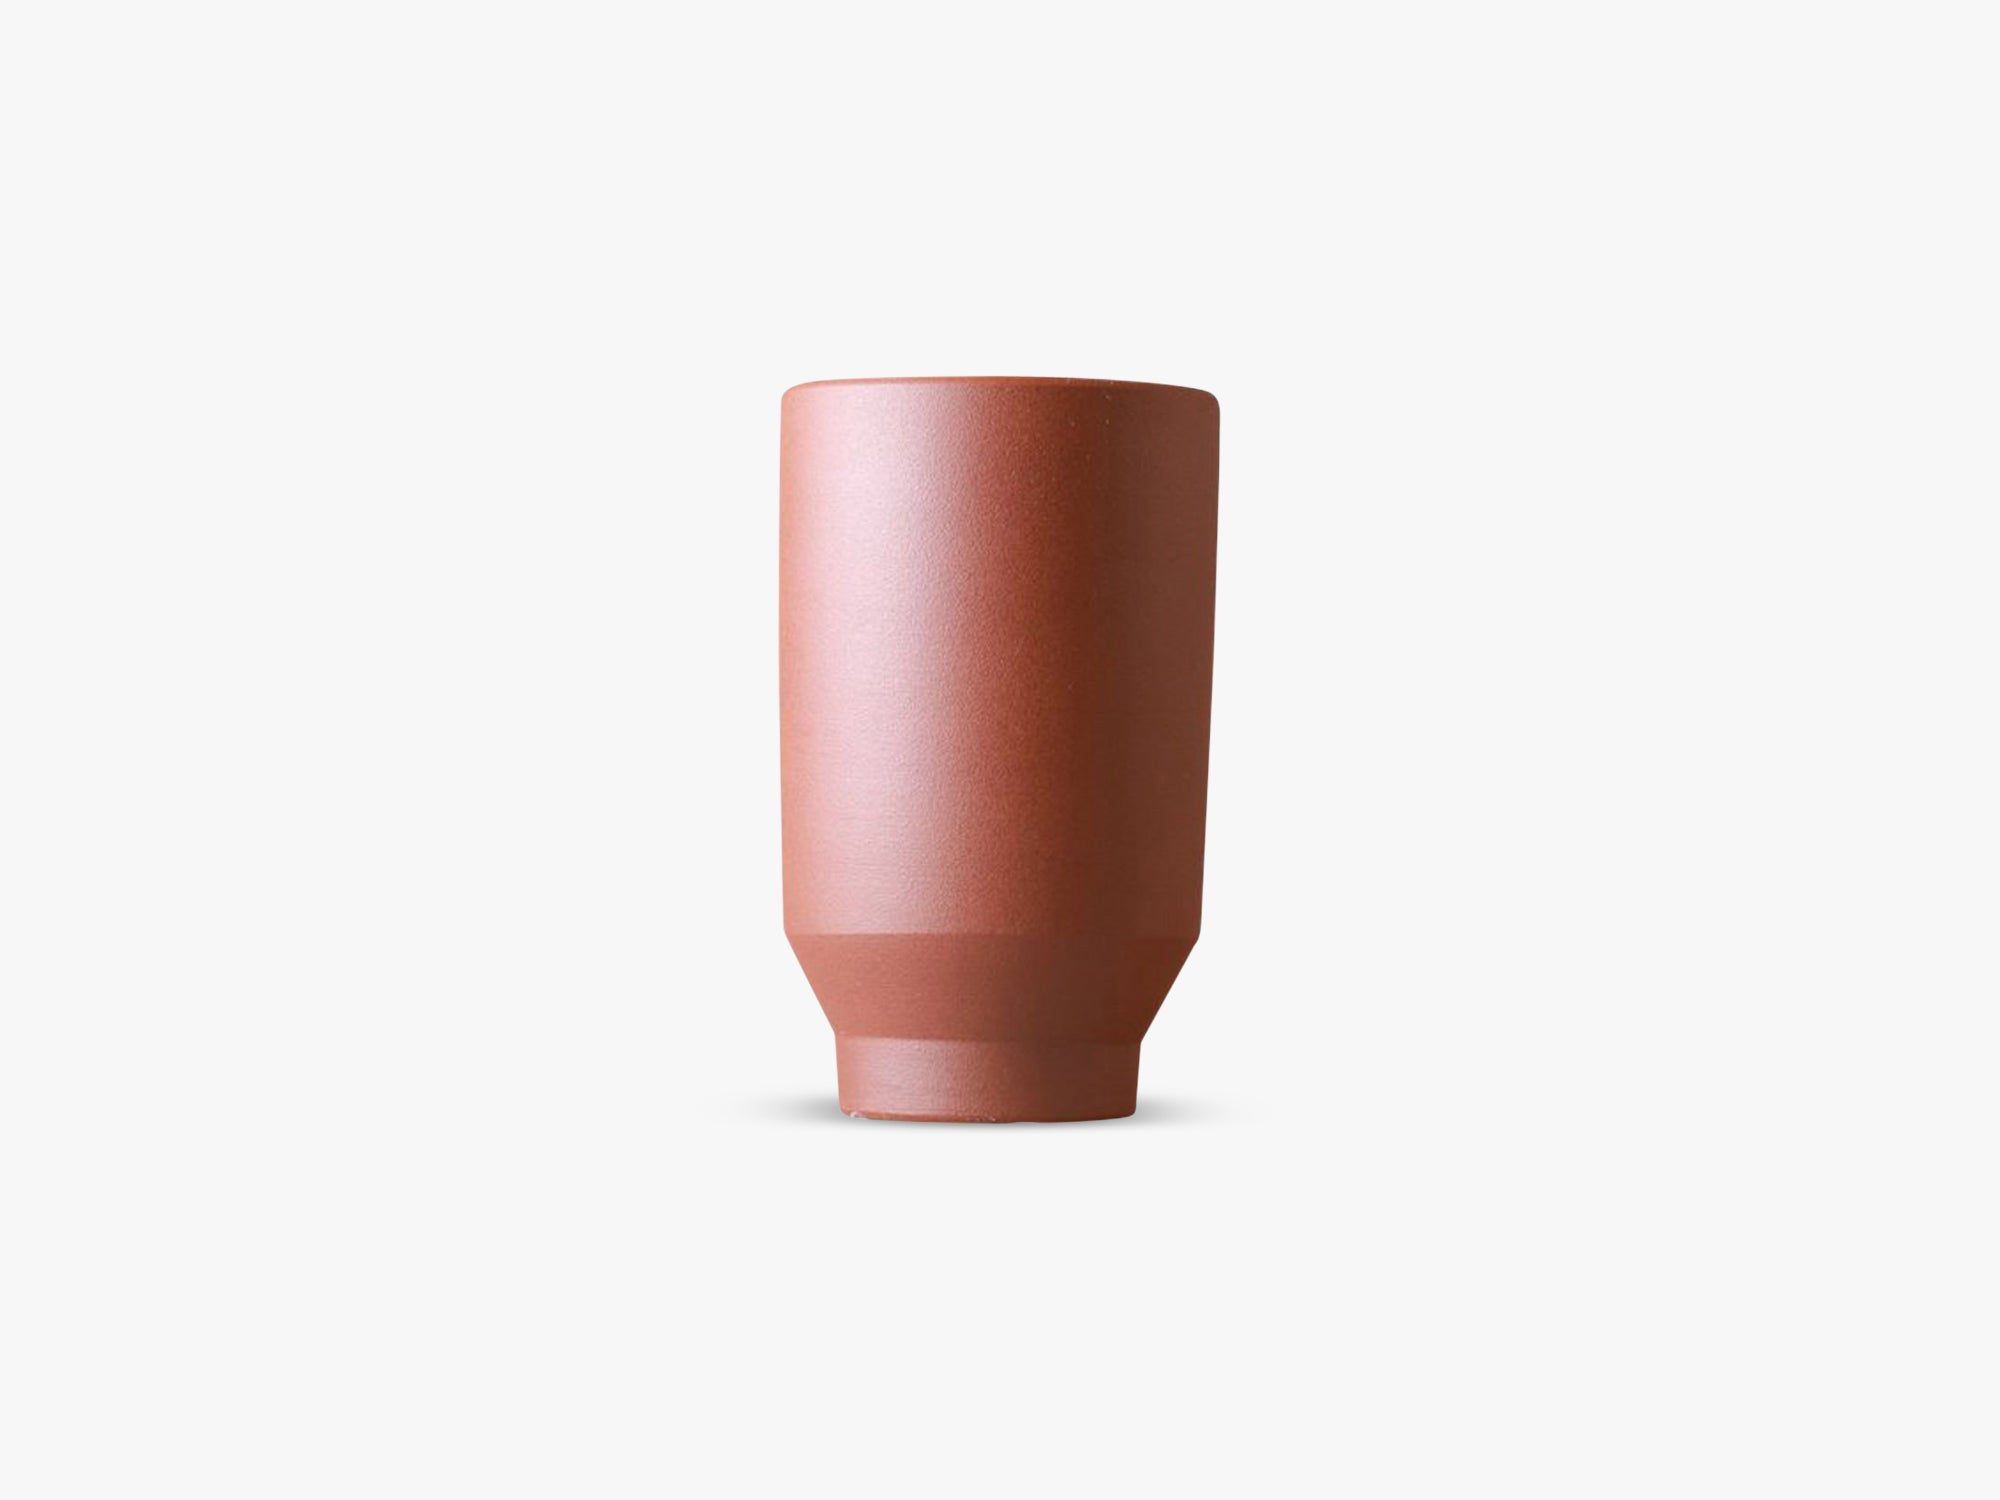 Boyhood Ceramic Pot - Cylinder, High Risk Red fra Specktrum